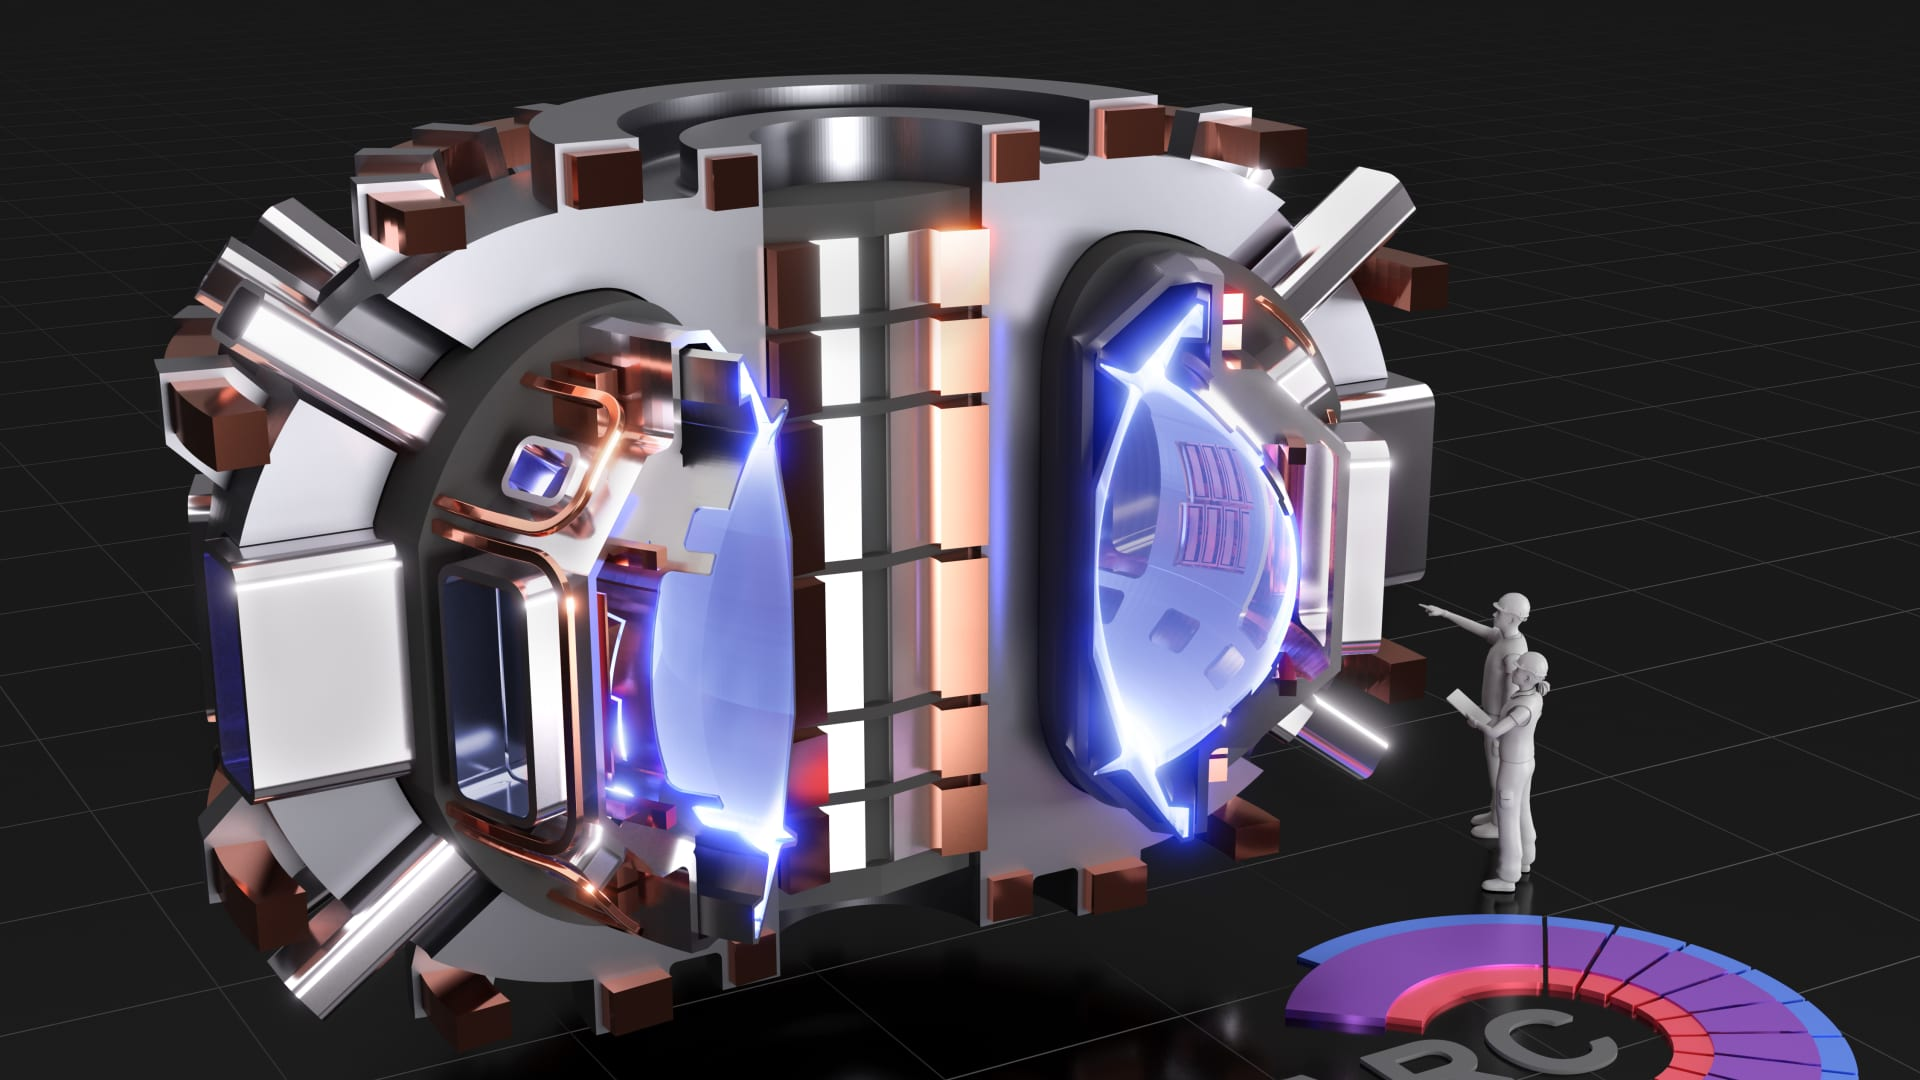 This is a rendering of the SPARC, a tokamak machine currently being designed by the team from the Massachusetts Institute of Technology and Commonwealth Fusion Systems, which aims to create and confine a plasma to create energy with fusion.